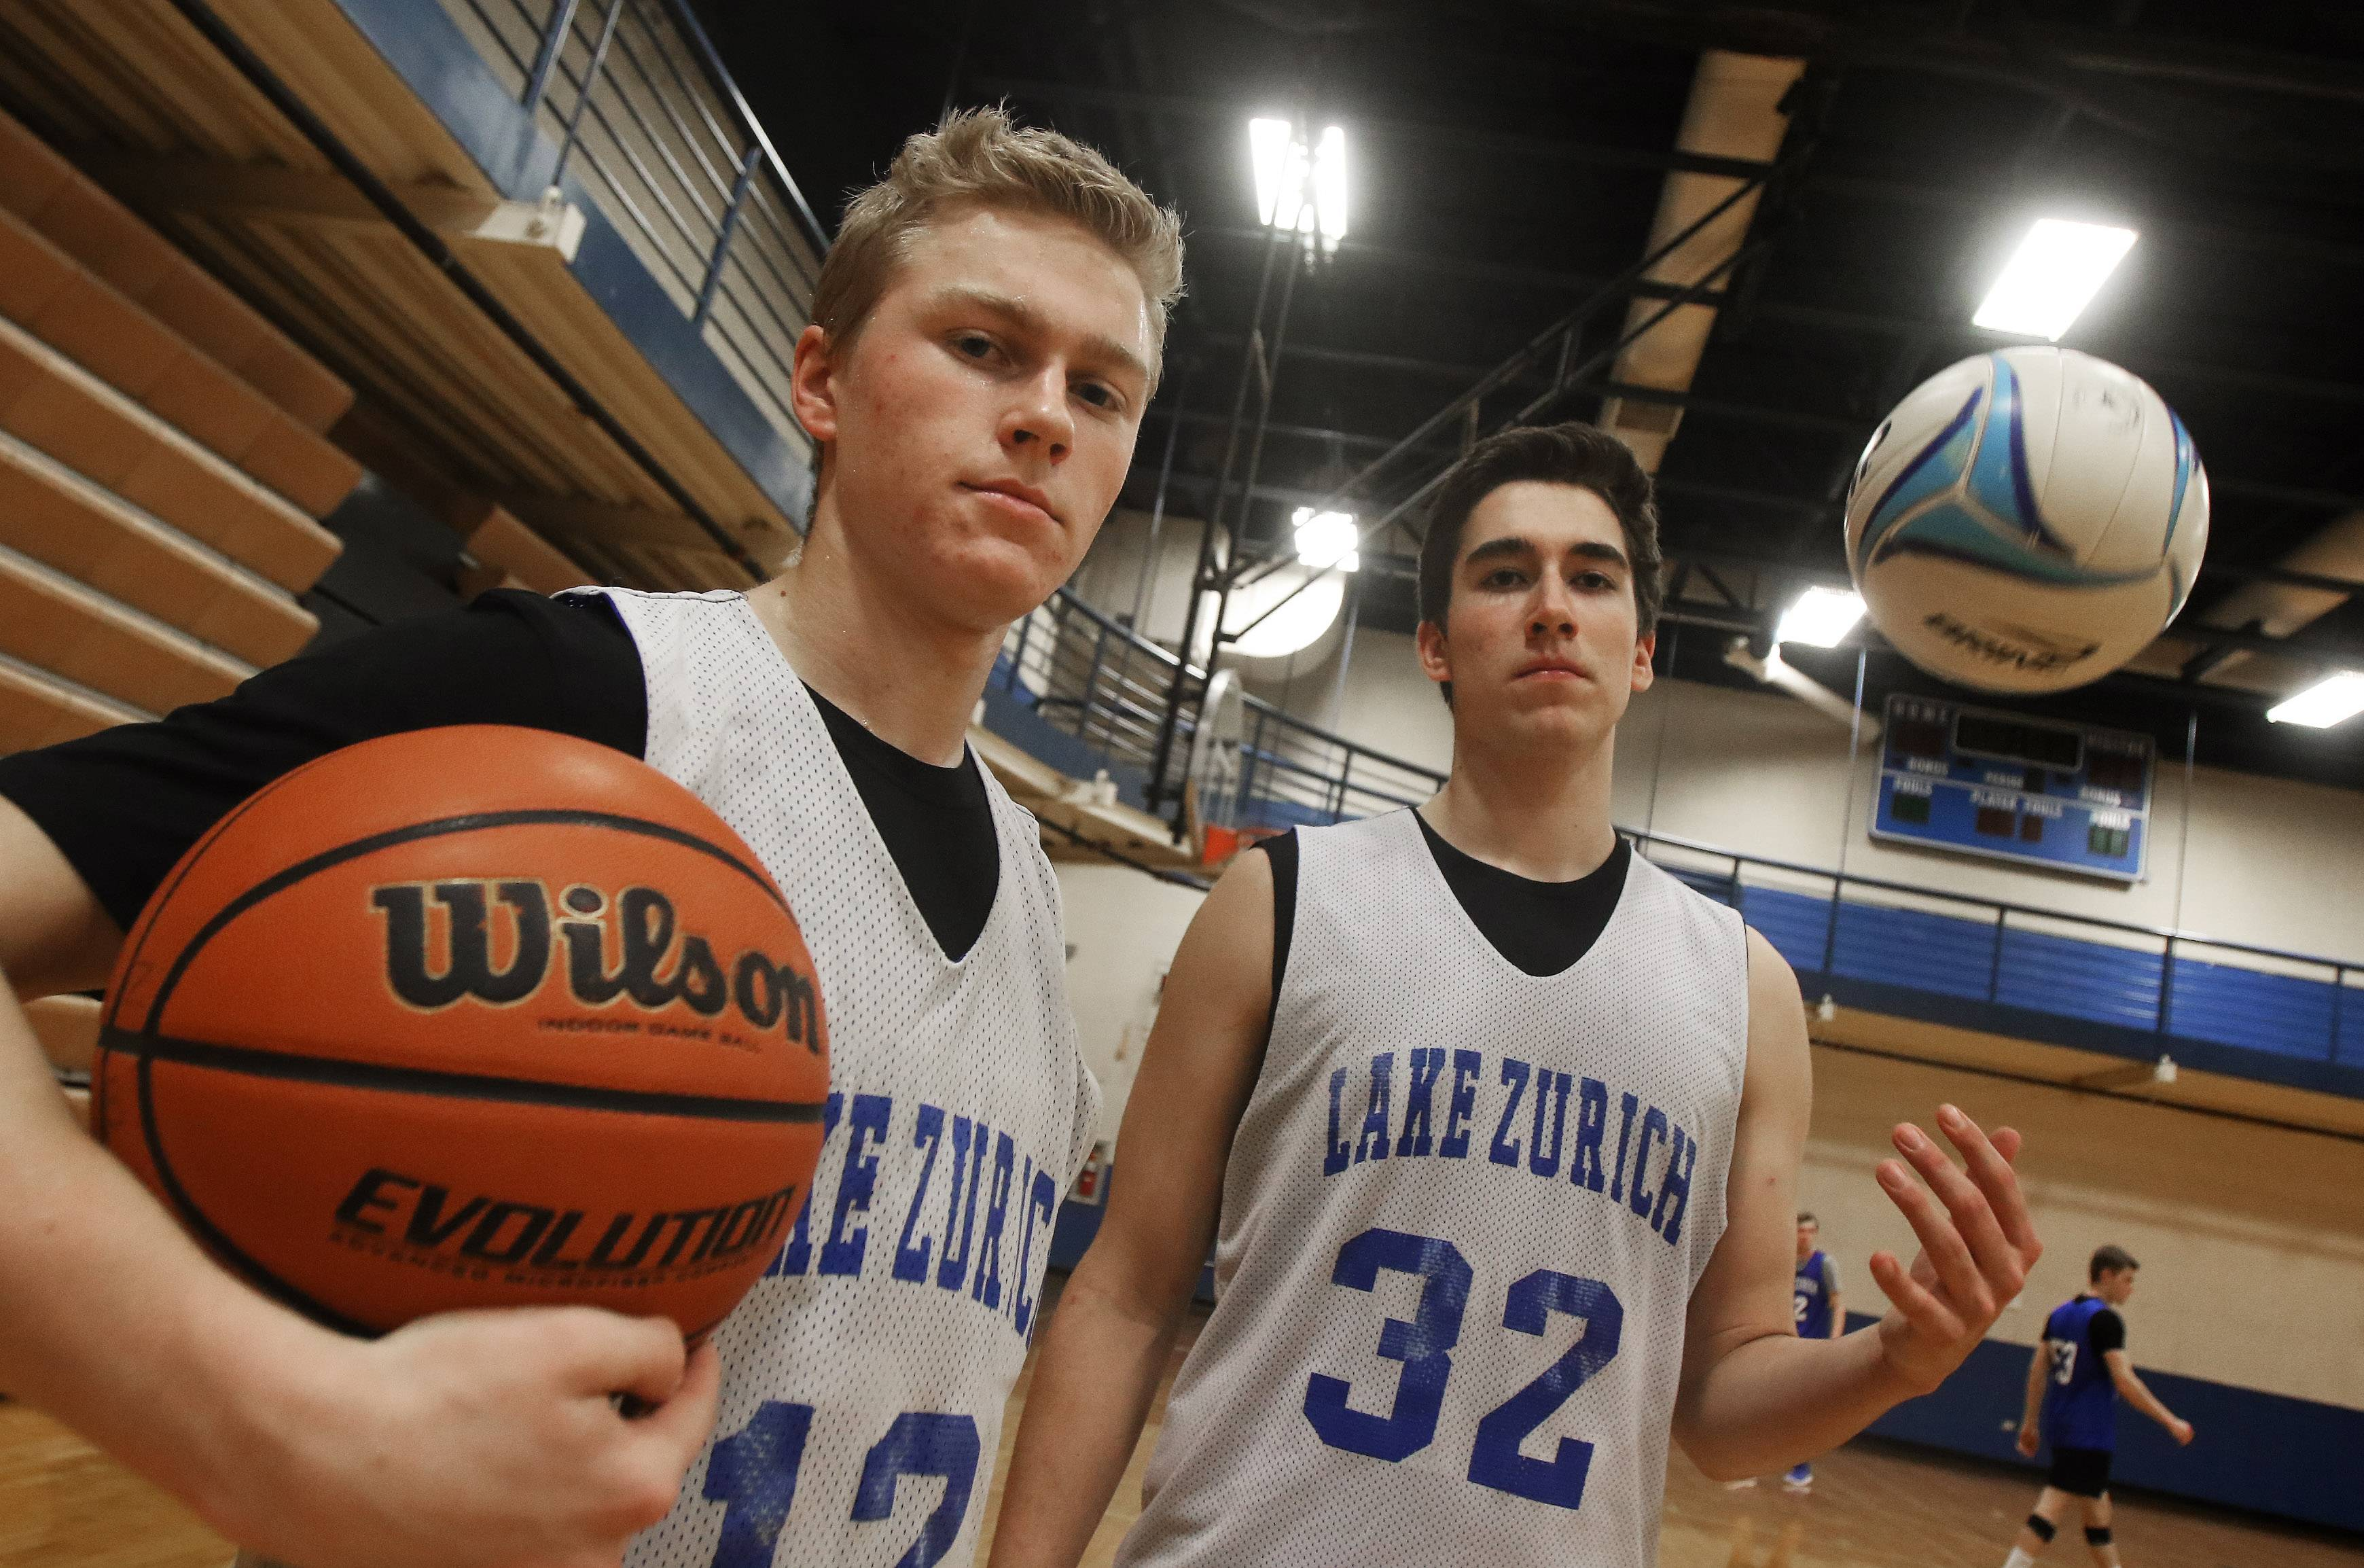 Lake Zurich basketball players Joe Heffernan, left, and Tyler Sarvady are basketball players for the moment -- and soccer and volleyball player, respectively, at other times of the year.